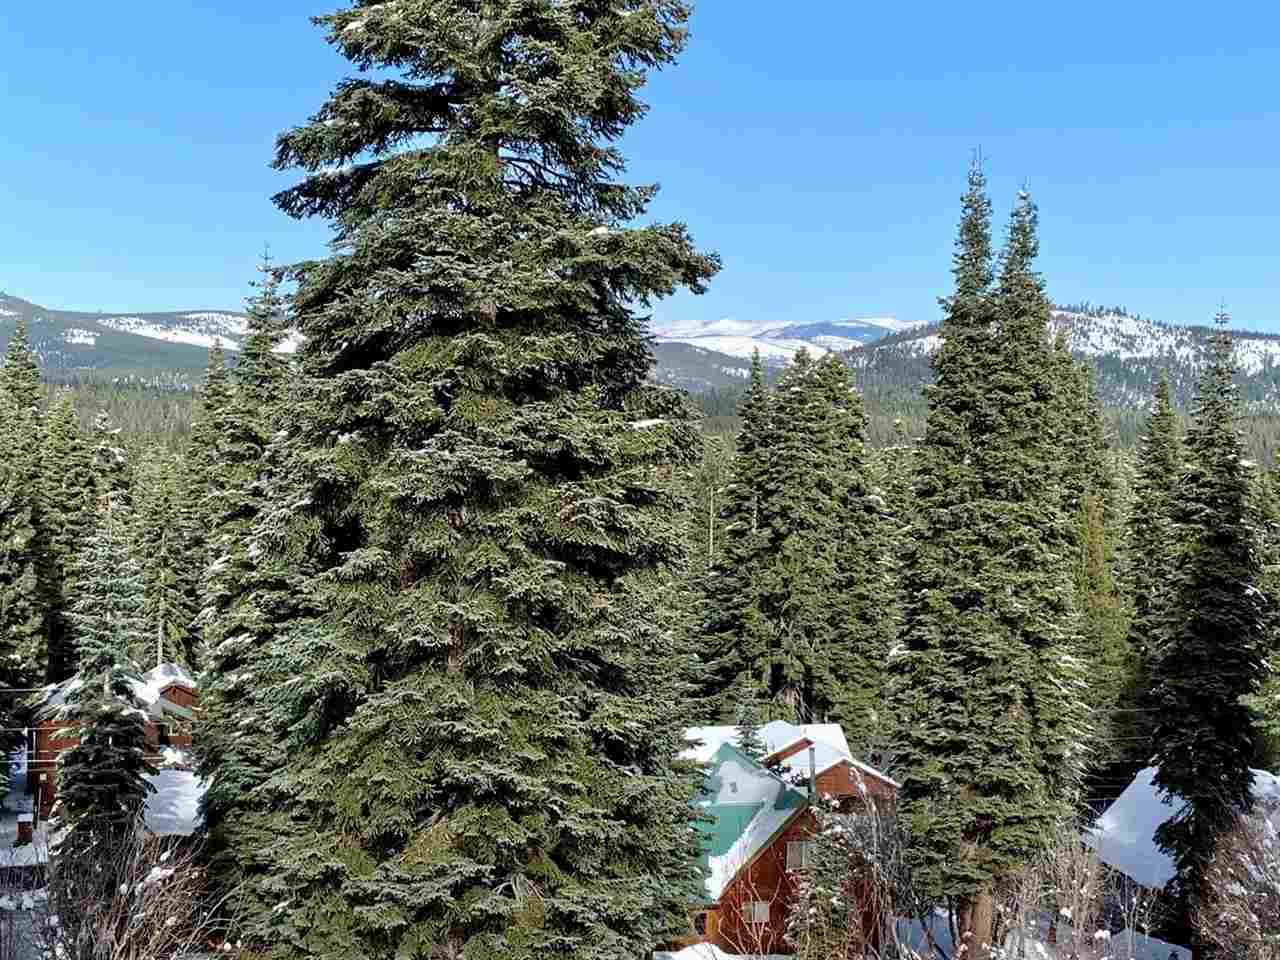 Image for 11851 Skislope Way, Truckee, CA 96161-0000